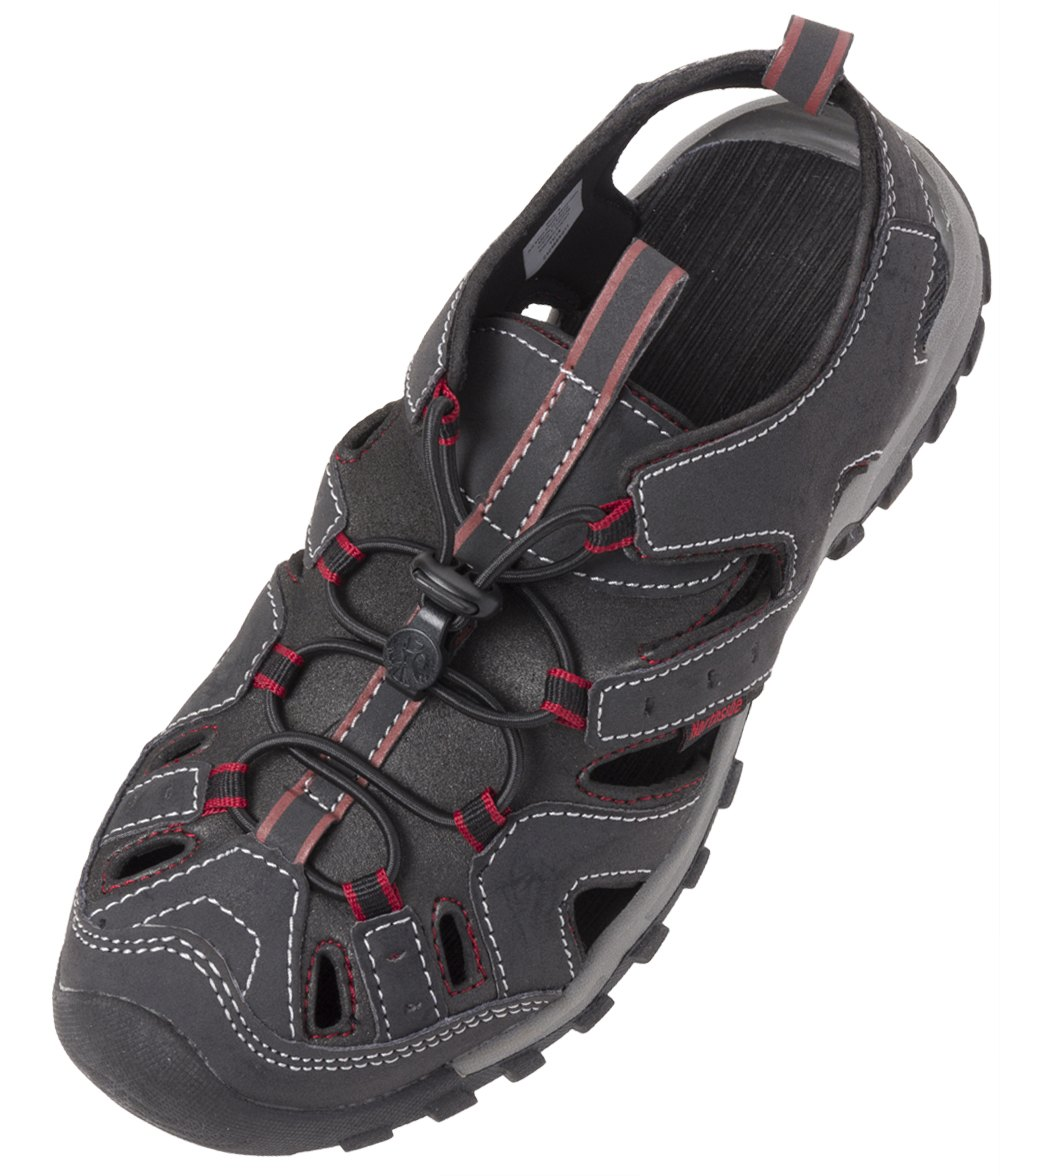 Northside Boys' Burke II Water Shoe at SwimOutlet.com